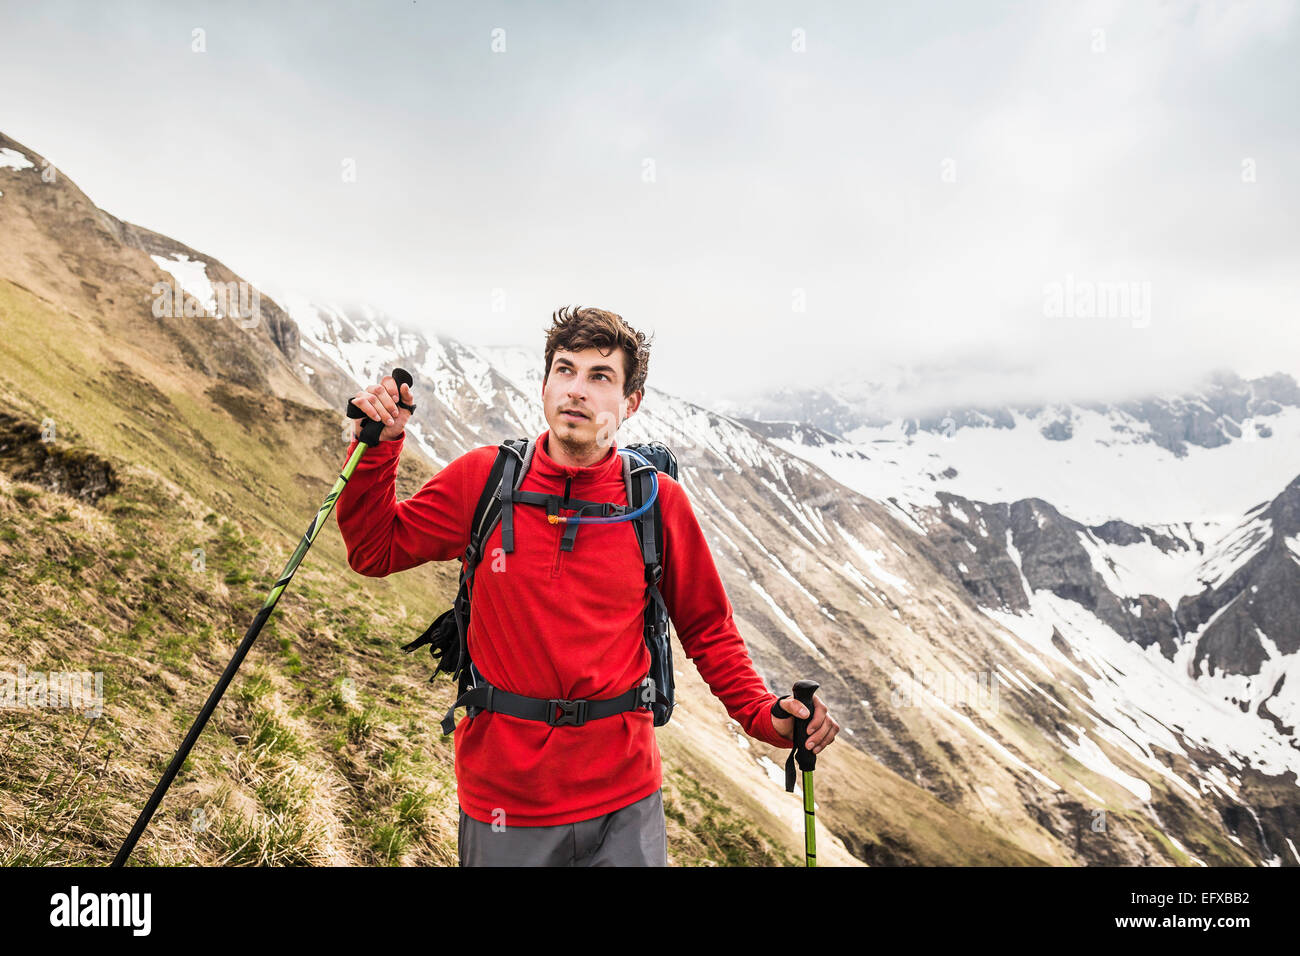 Young man mountain trekking in Bavarian Alps, Oberstdorf, Bavaria, Germany - Stock Image